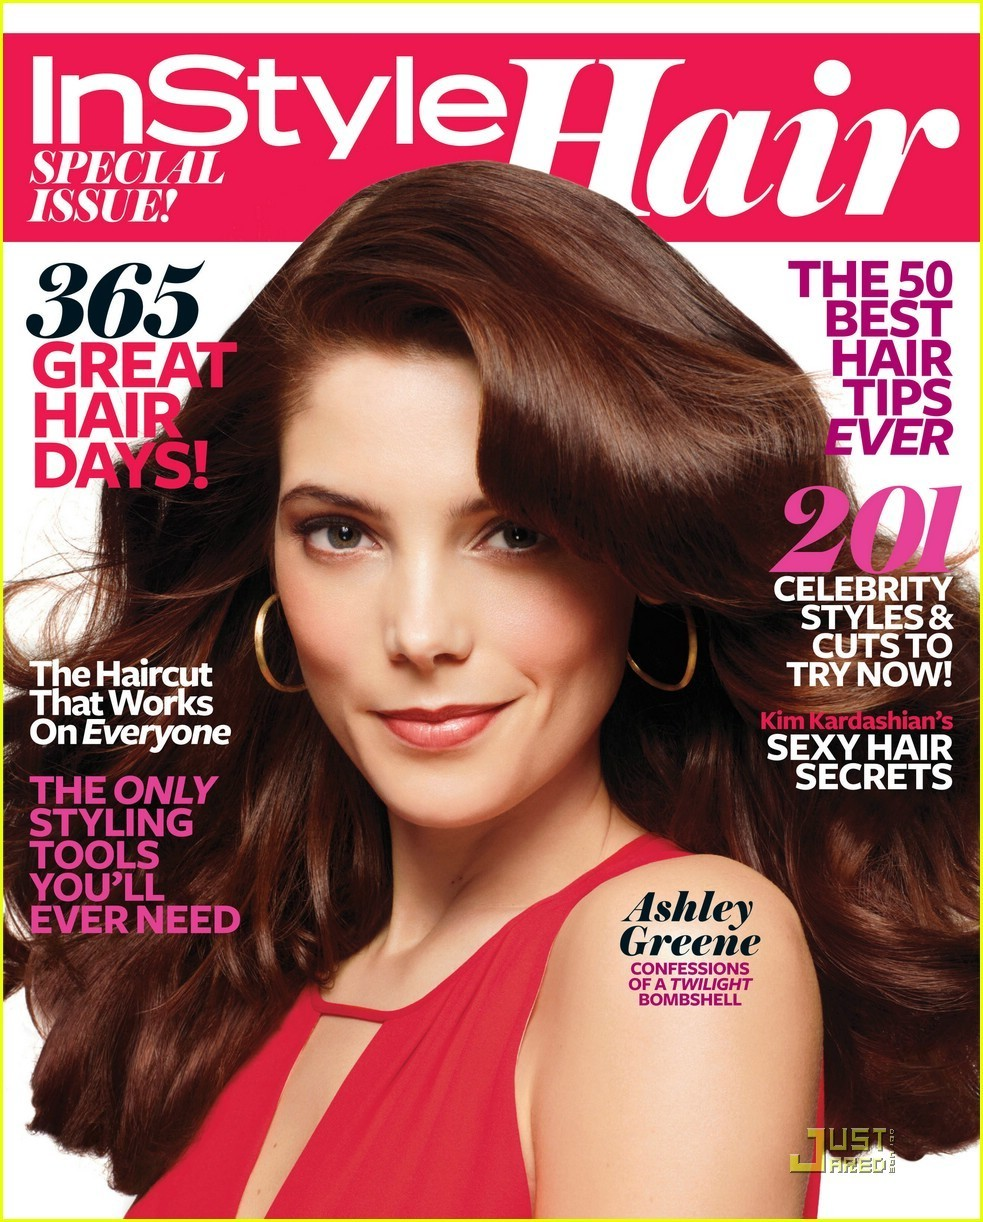 'InStyle Hair'